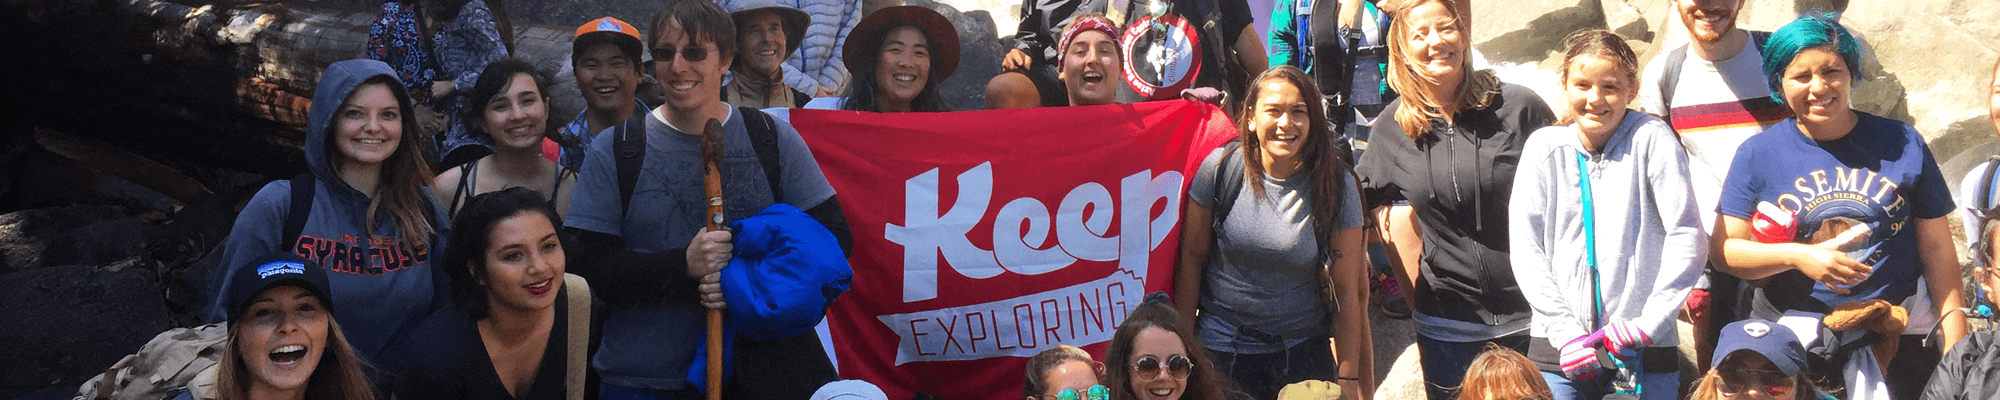 Geography field trip to Yosemite, group photo, banner being held that says Keep Exploring